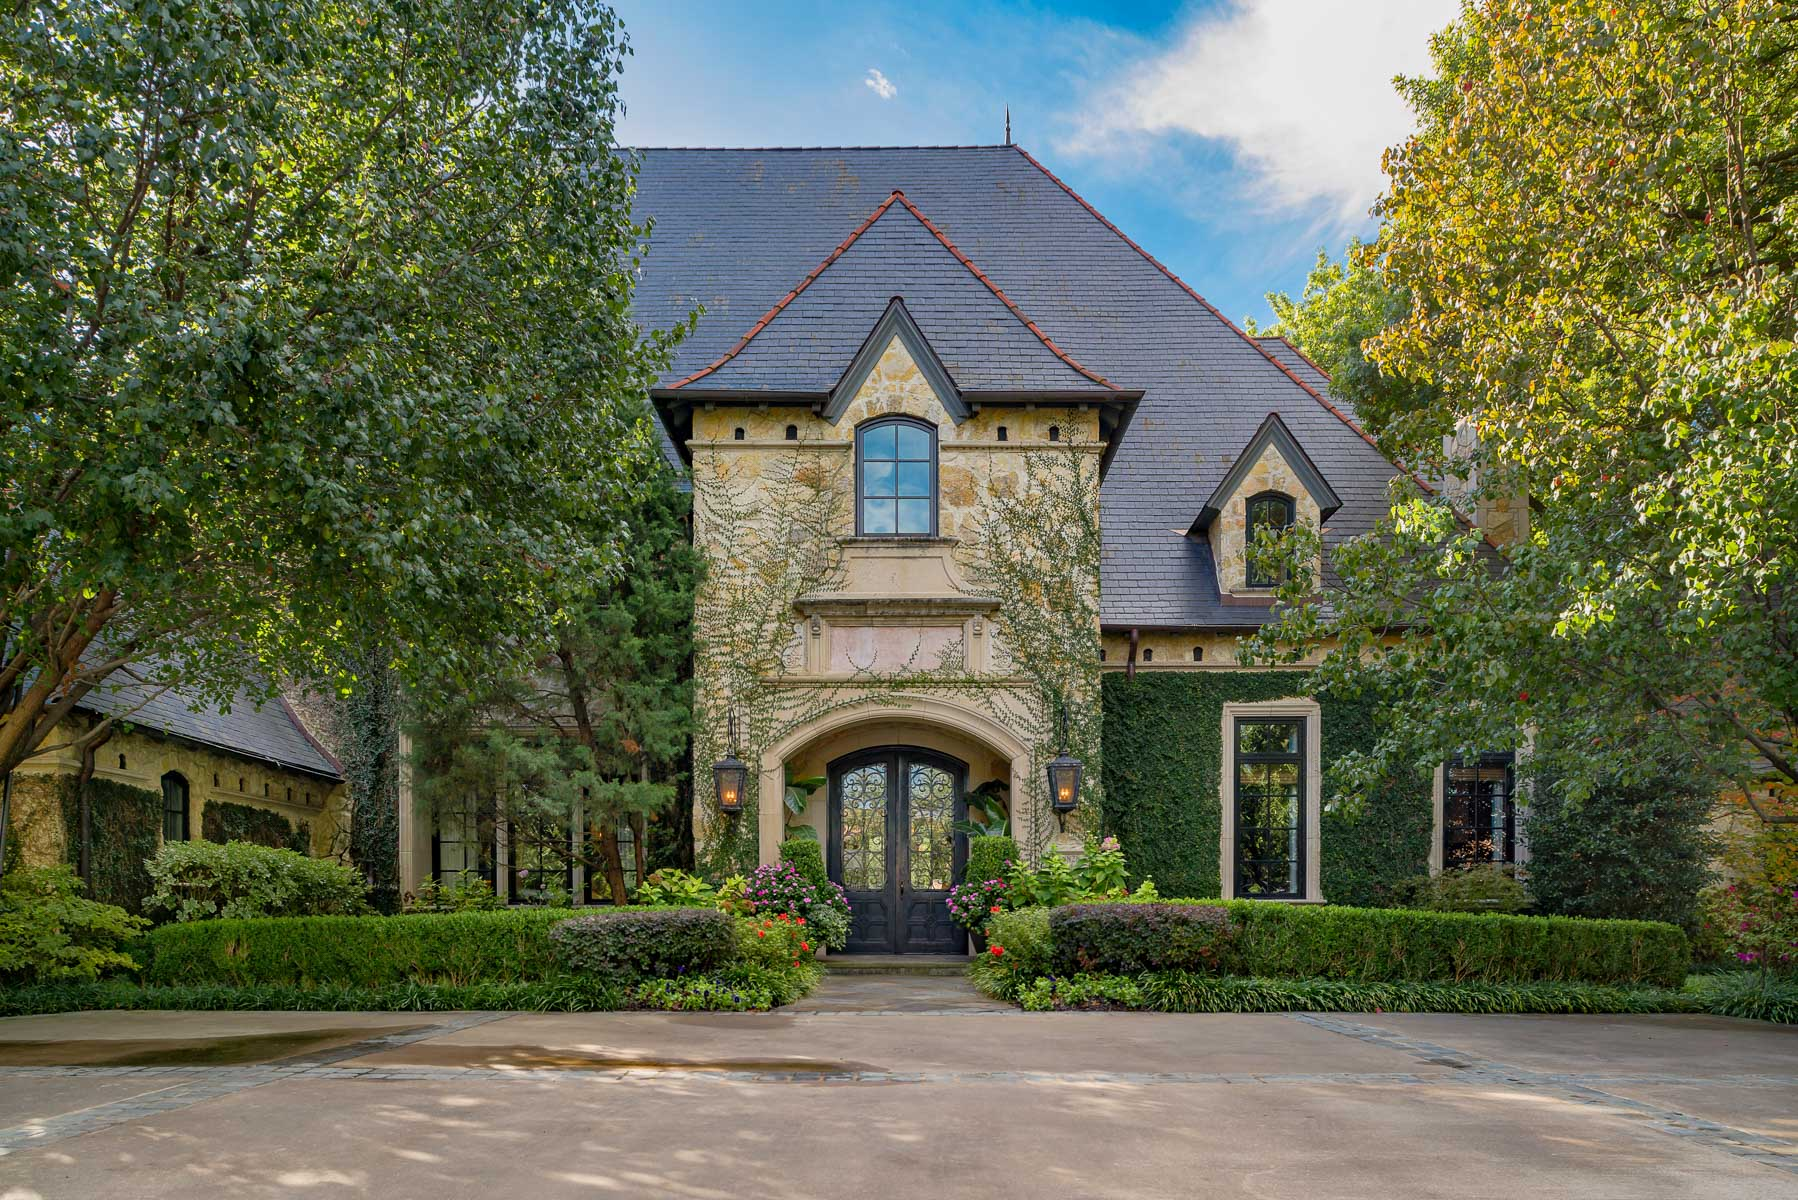 Maison unifamiliale pour l Vente à Preston Hollow Estate 5828 Woodland Dr Dallas, Texas, 75225 États-Unis